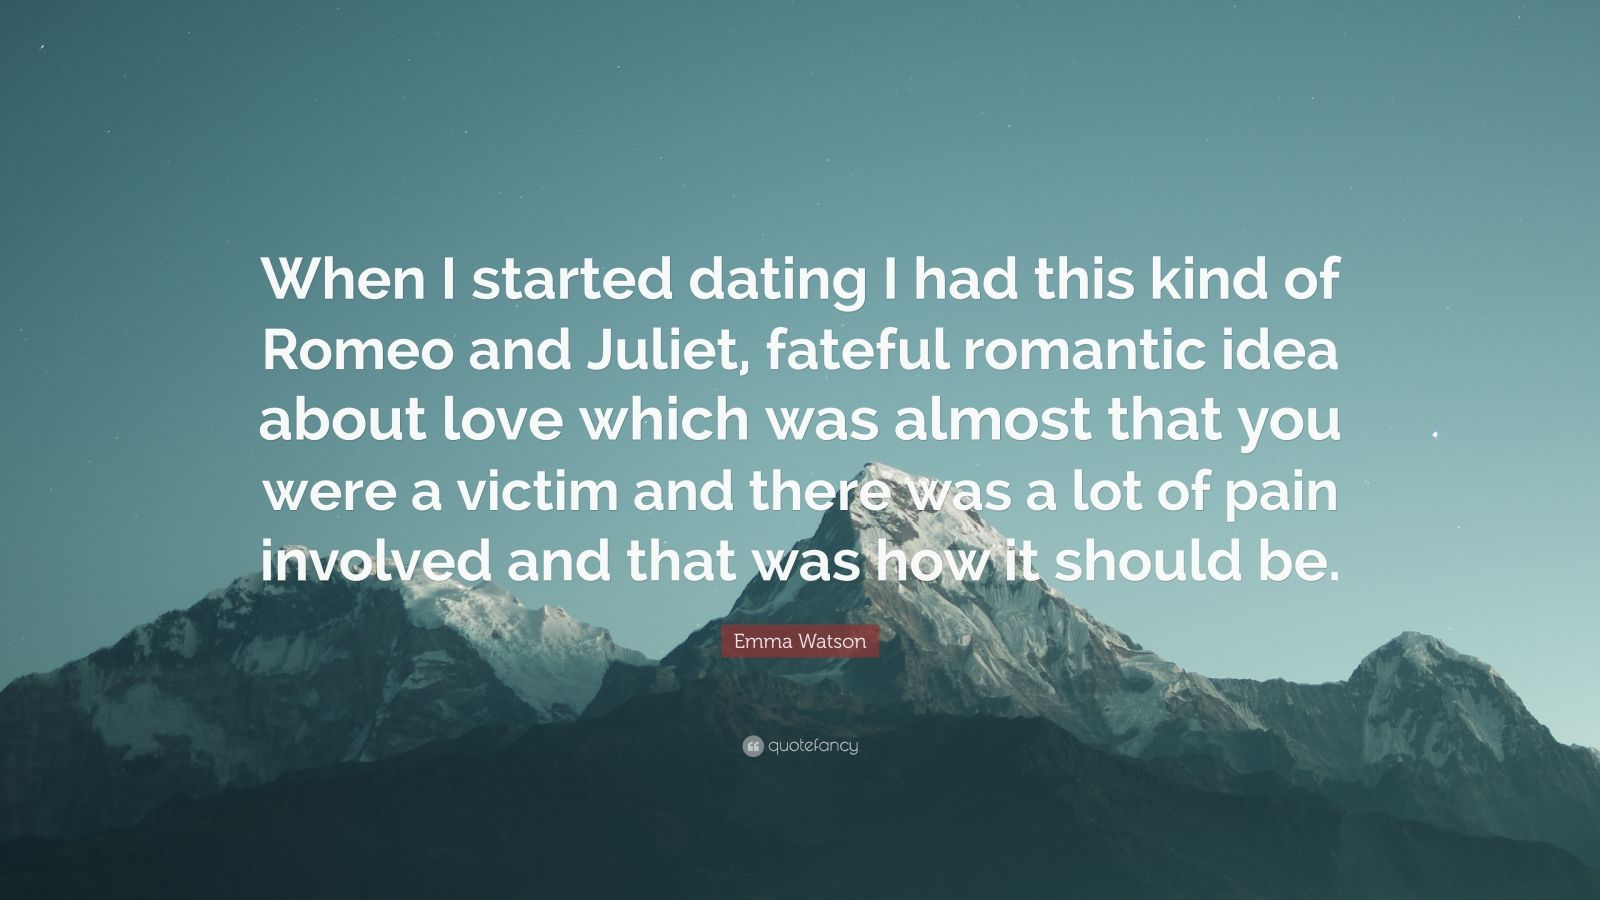 """Emma Watson Quote: """"When I started dating I had this kind of Romeo and Juliet, fateful romantic idea about love which was almost that you were a victim and there was a lot of pain involved and that was how it should be."""""""